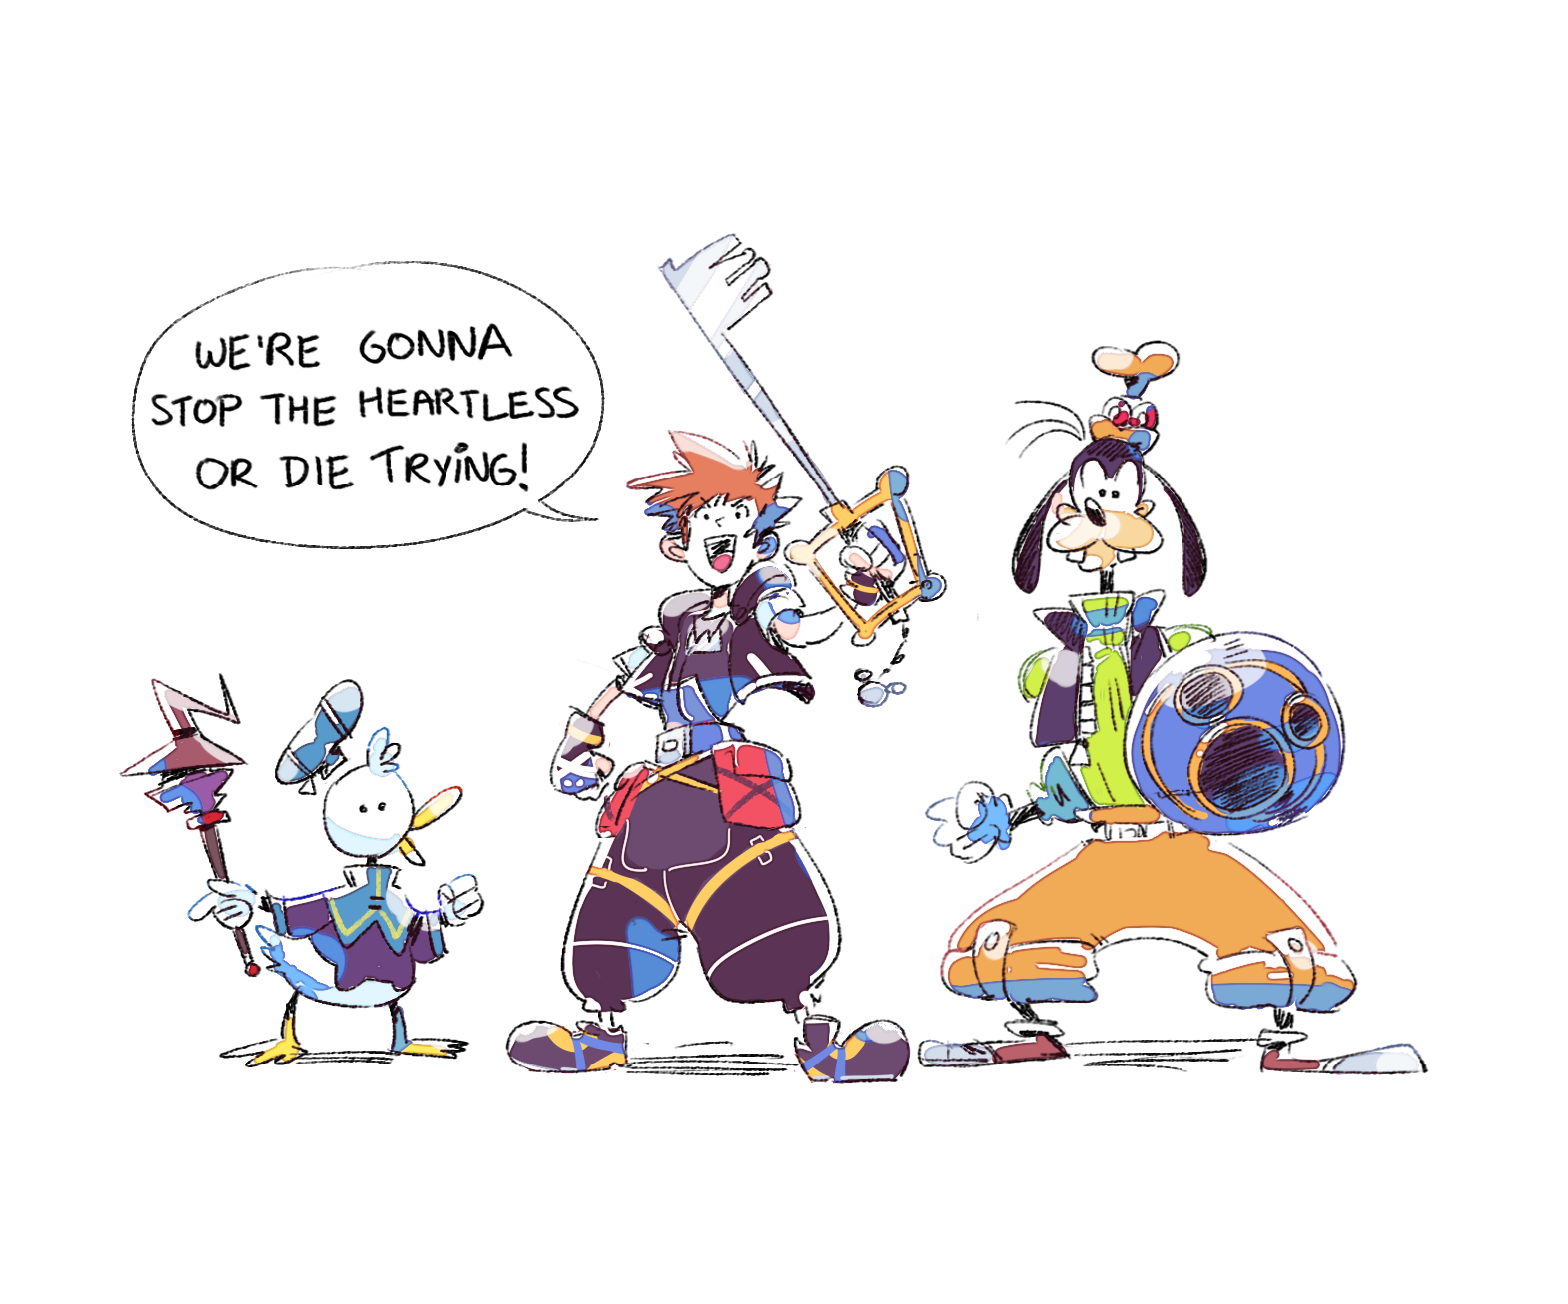 a scene from disney's three muskateers that seemed to fit into kingdom hearts... https://t.co/rF78zBuvAD